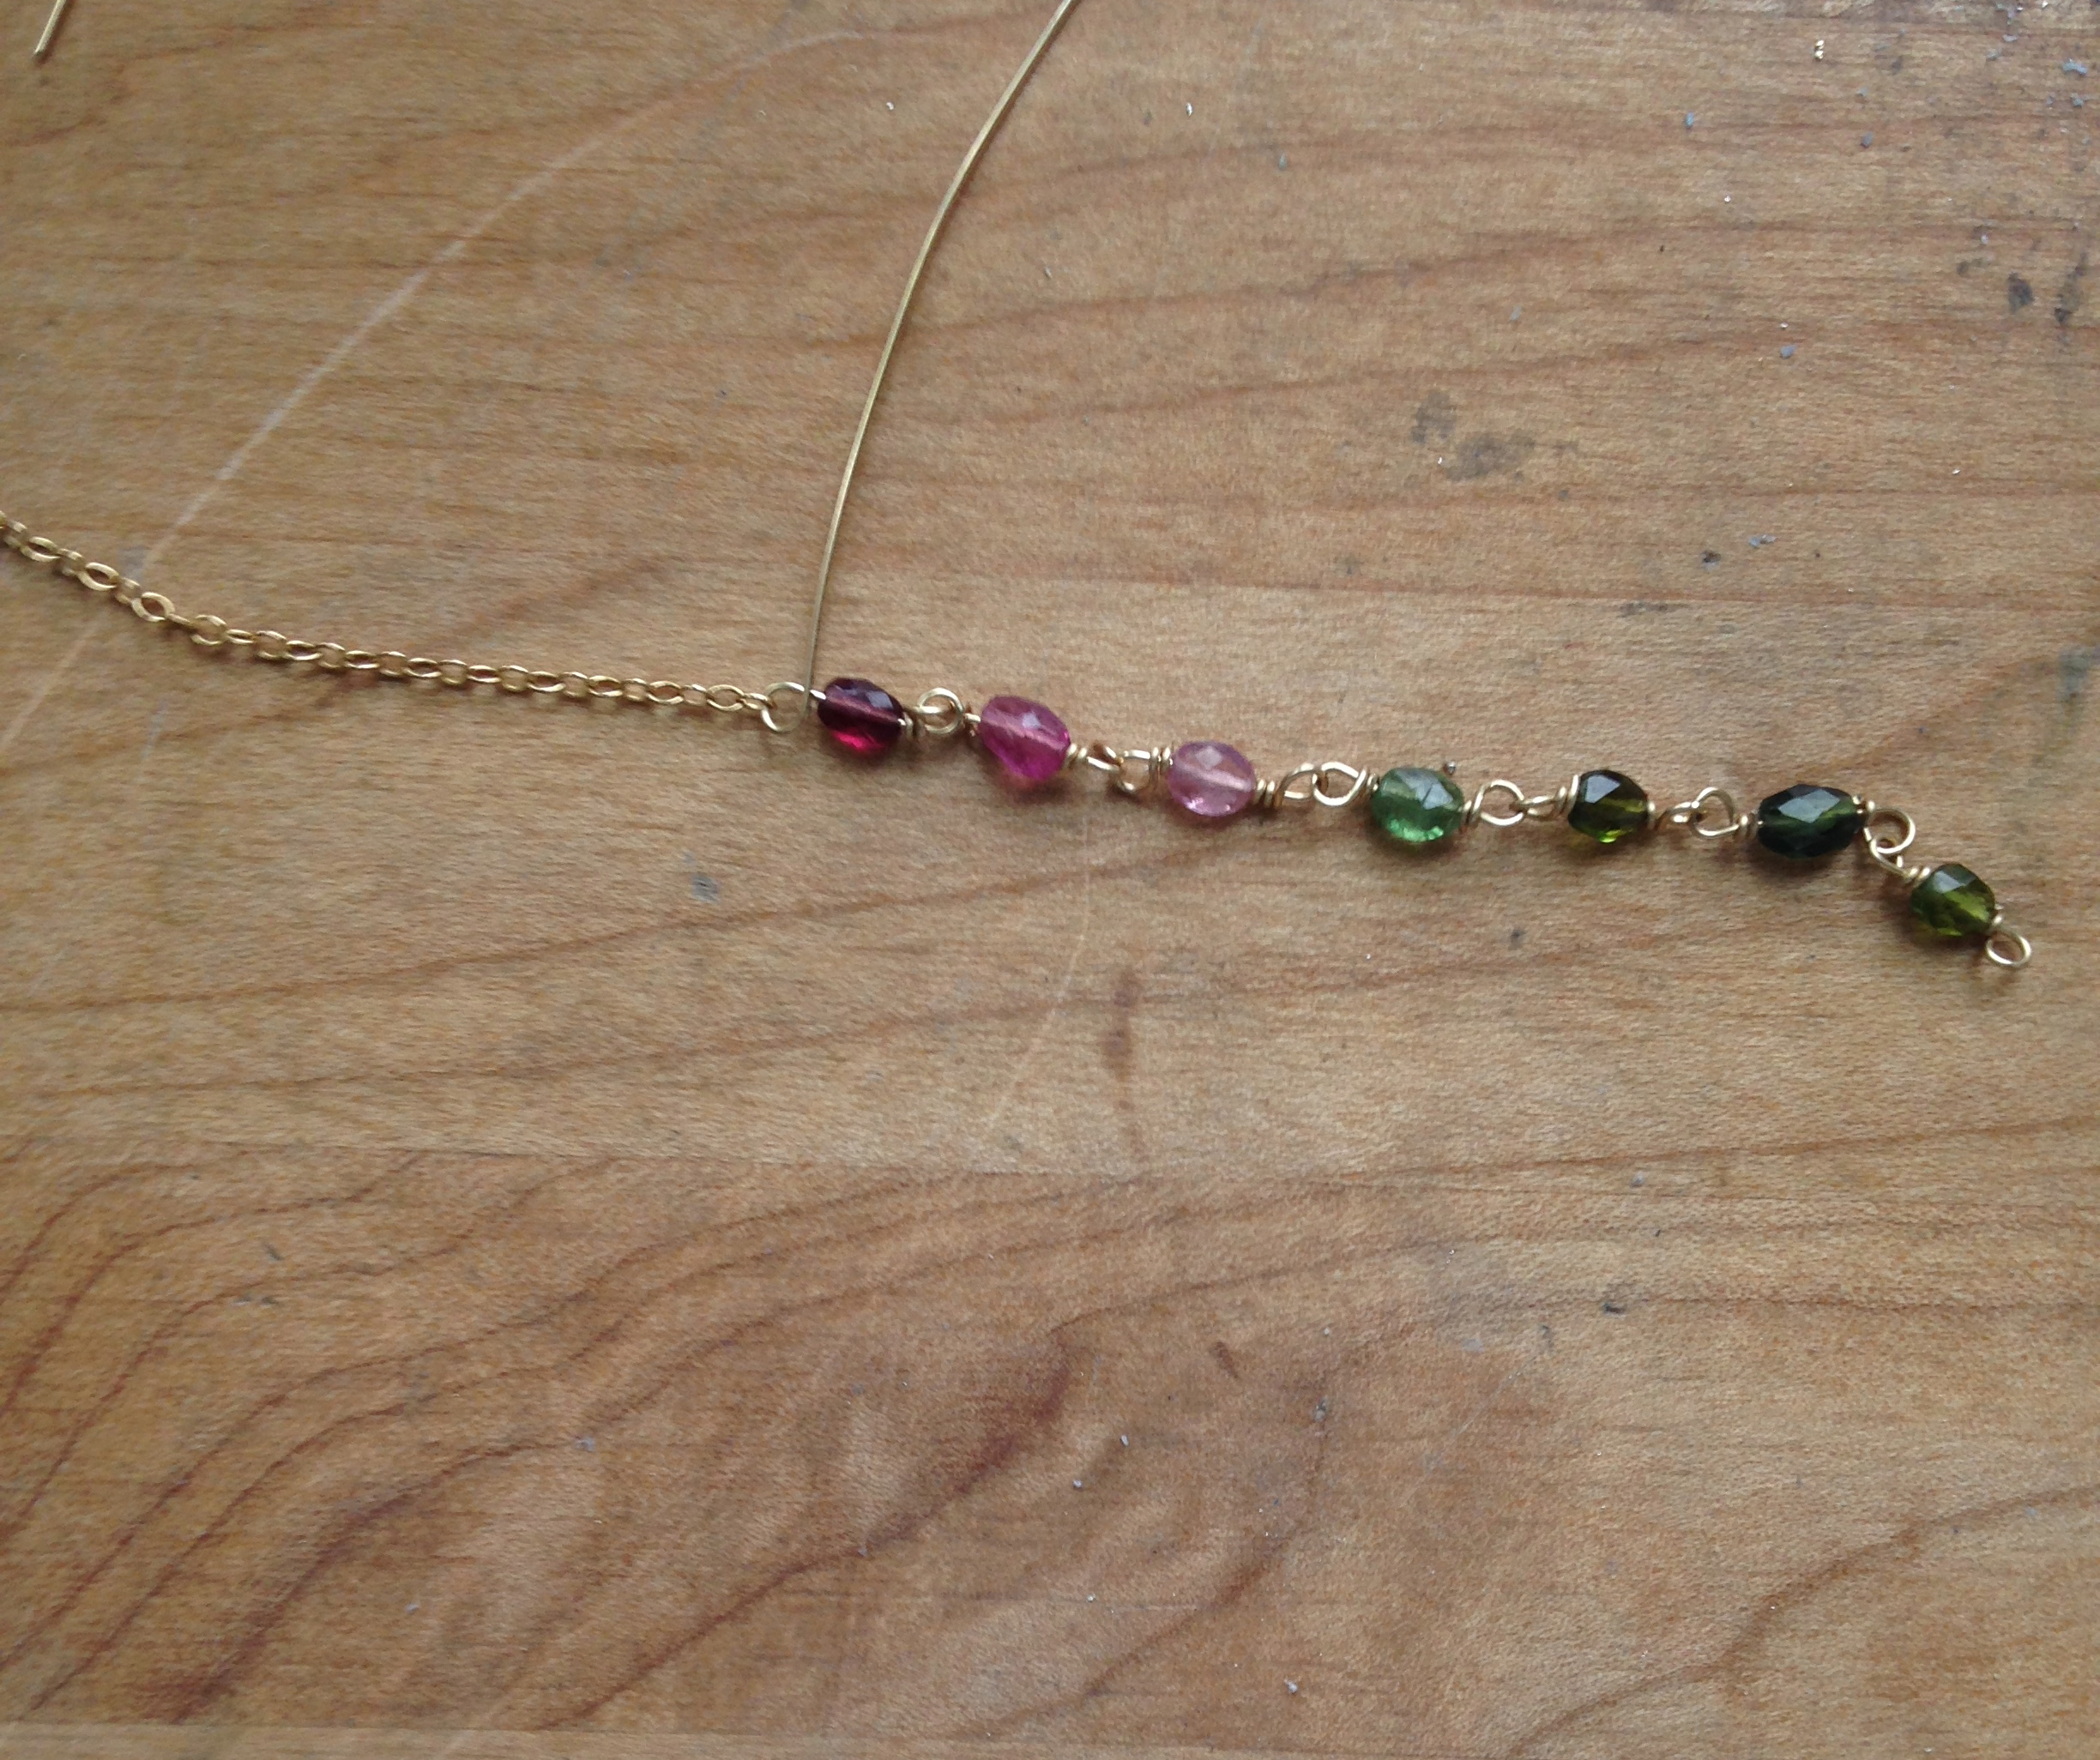 Attaching the beaded portion to wire